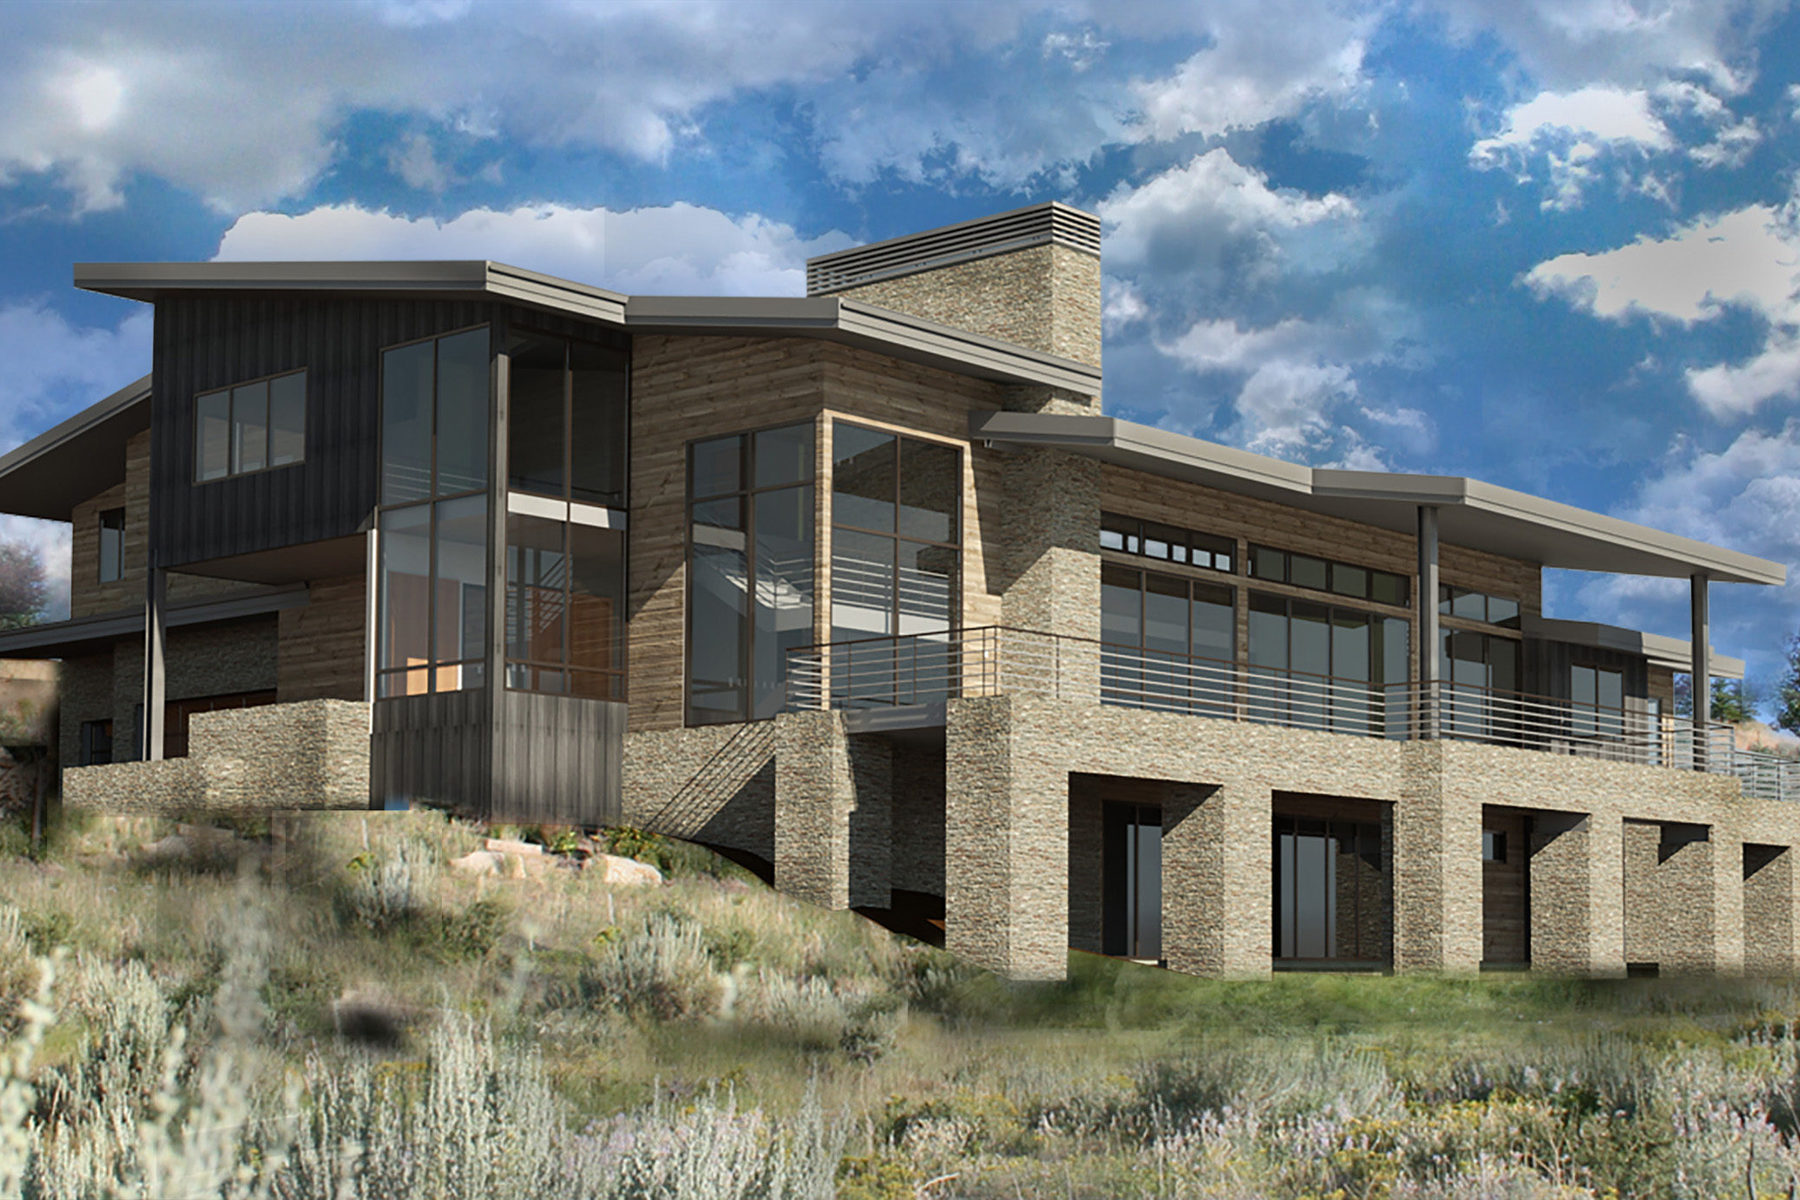 Single Family Home for Sale at Promontory New Contemporary 8340 N Ranch Garden Rd Park City, Utah, 84098 United States